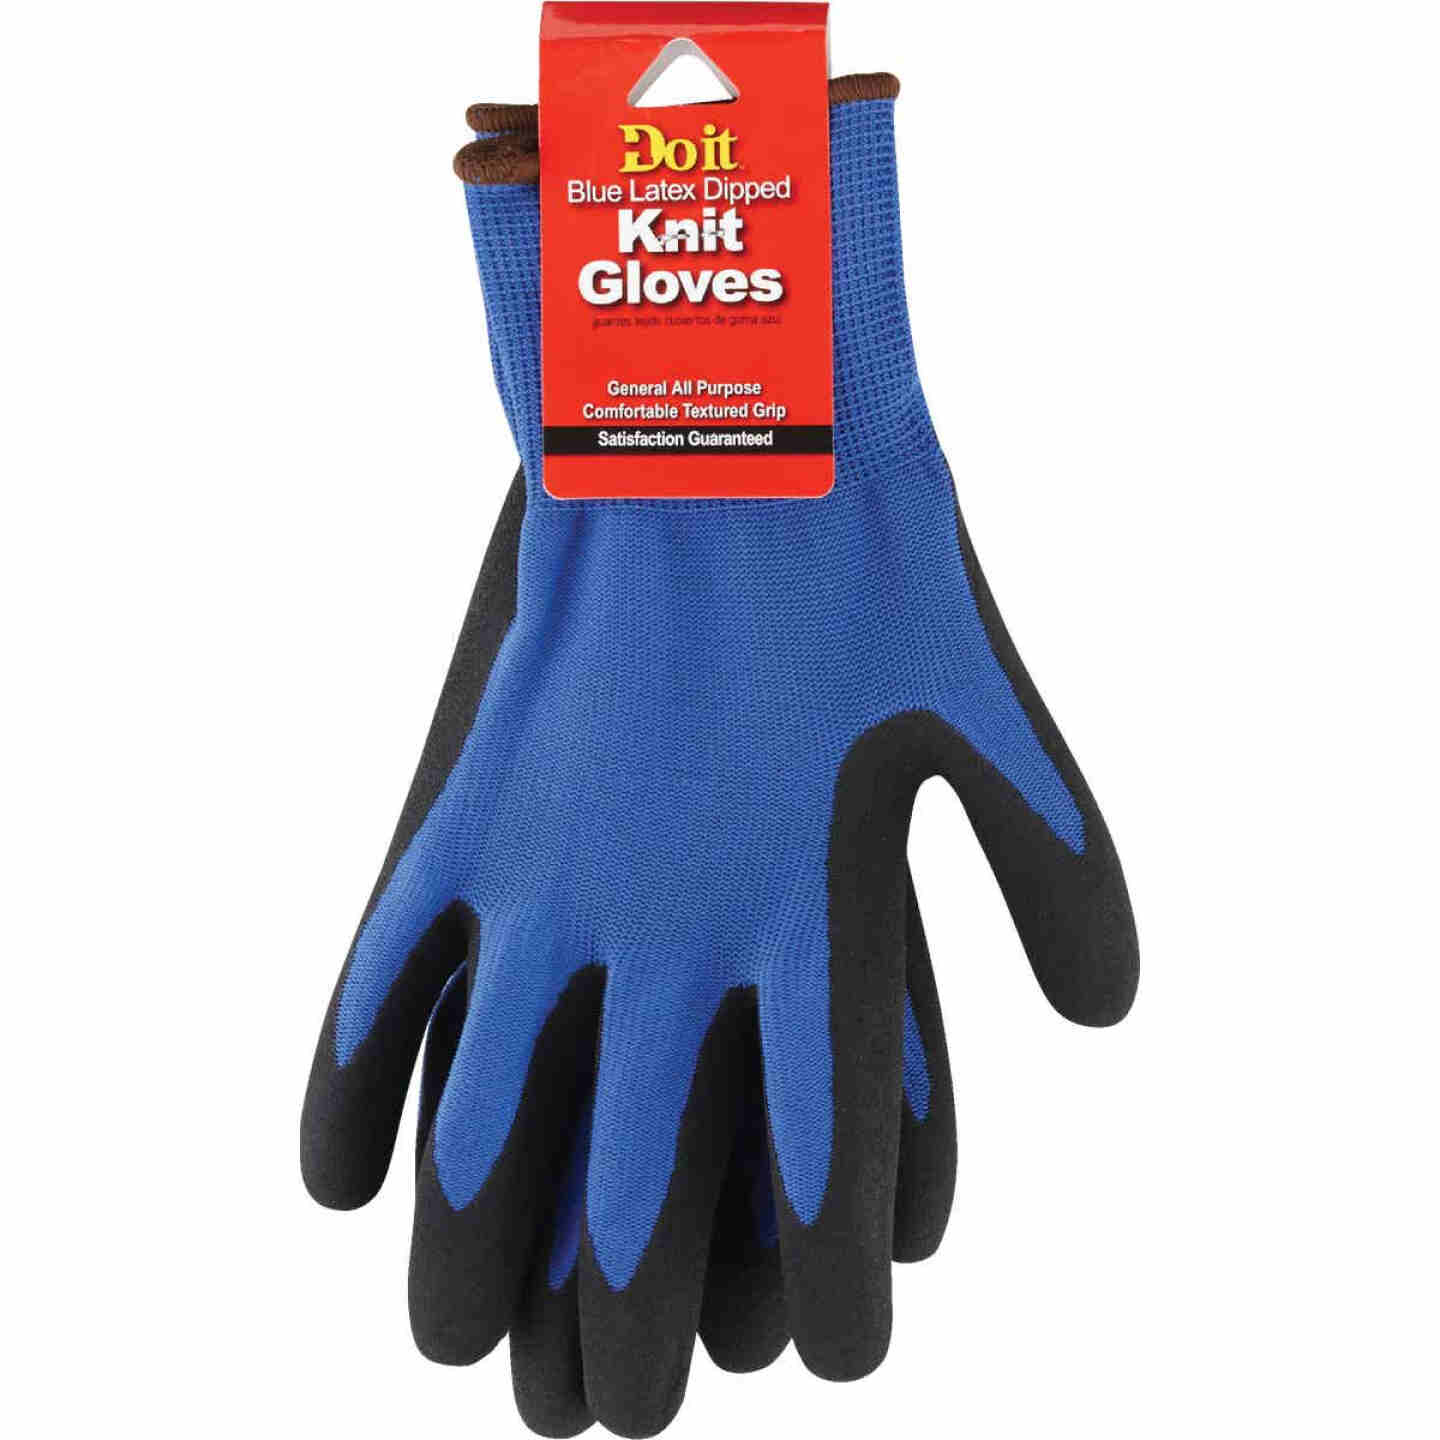 Do it Men's XL Grip Latex Coated Glove, Blue Image 2